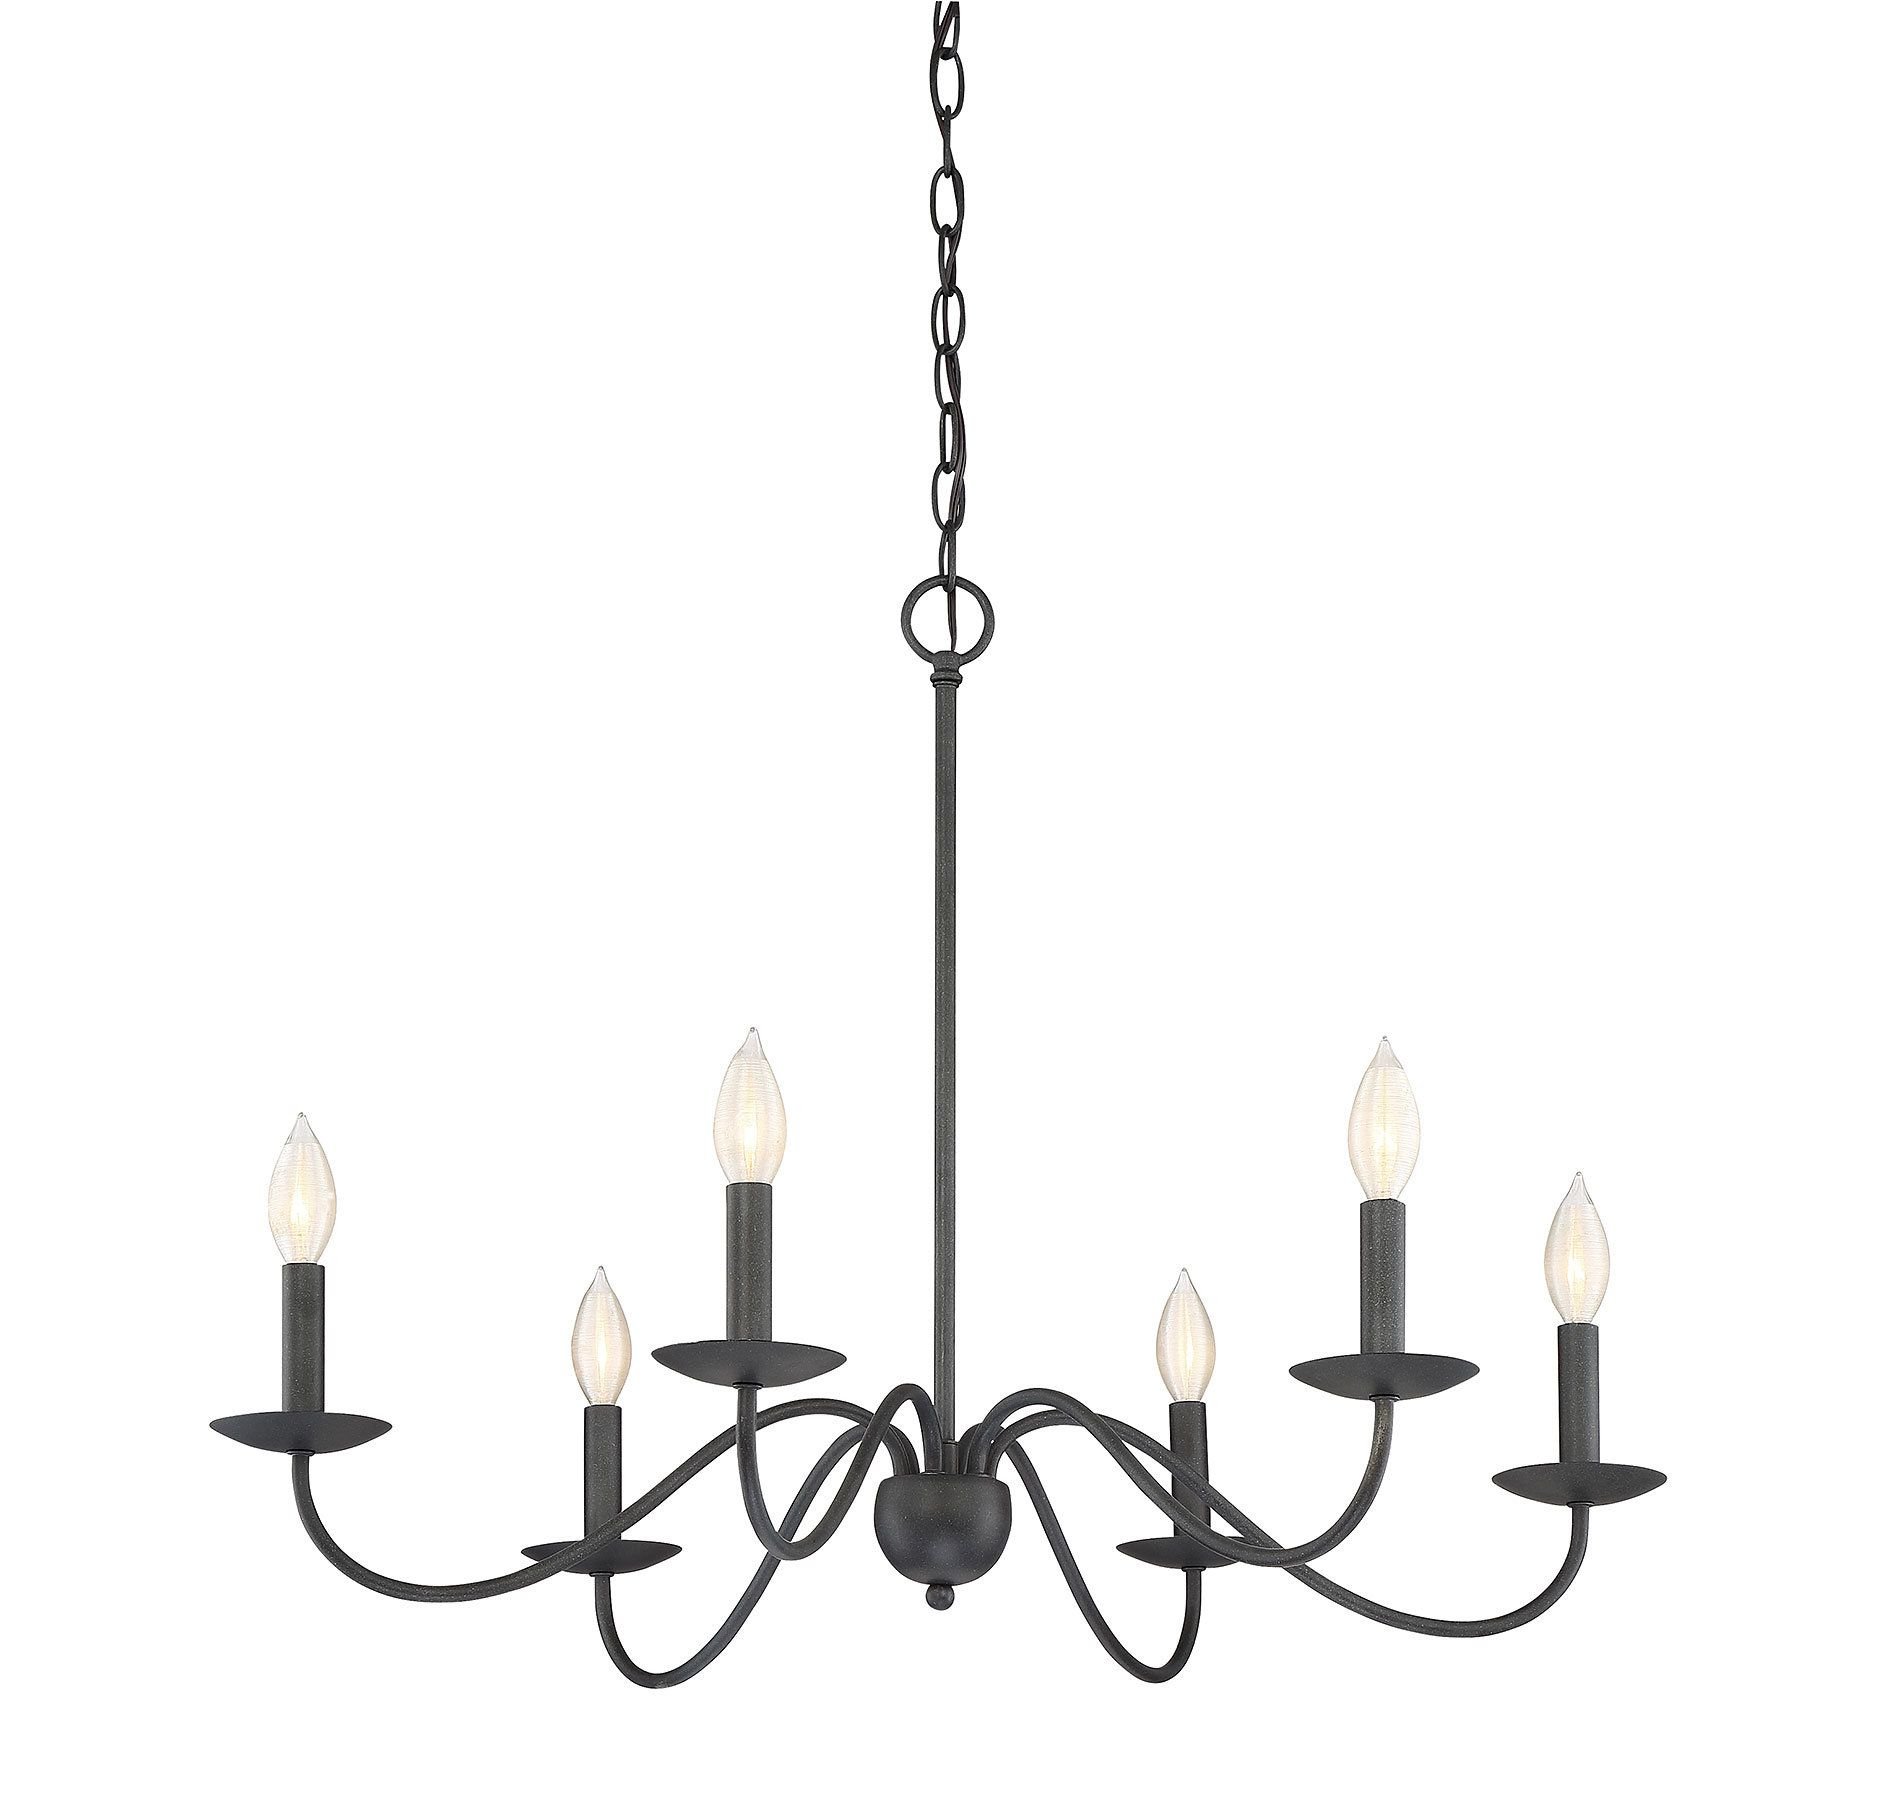 Perseus 6 Light Candle Style Chandelier | Products In Hamza 6 Light Candle Style Chandeliers (View 5 of 30)